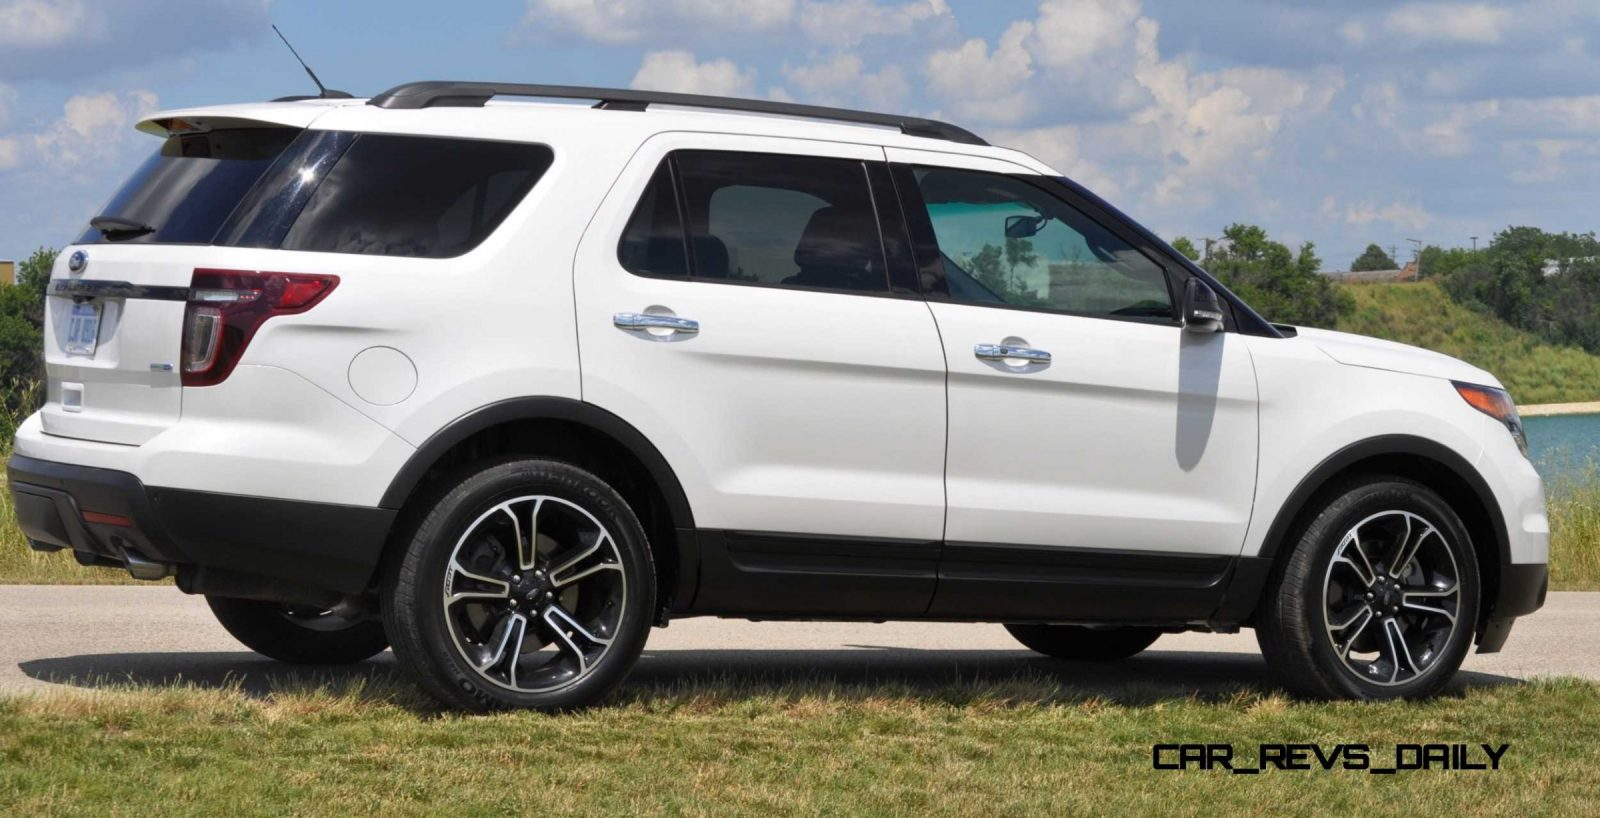 Ford Explorer Sport Photo Showcase And Animated GIF